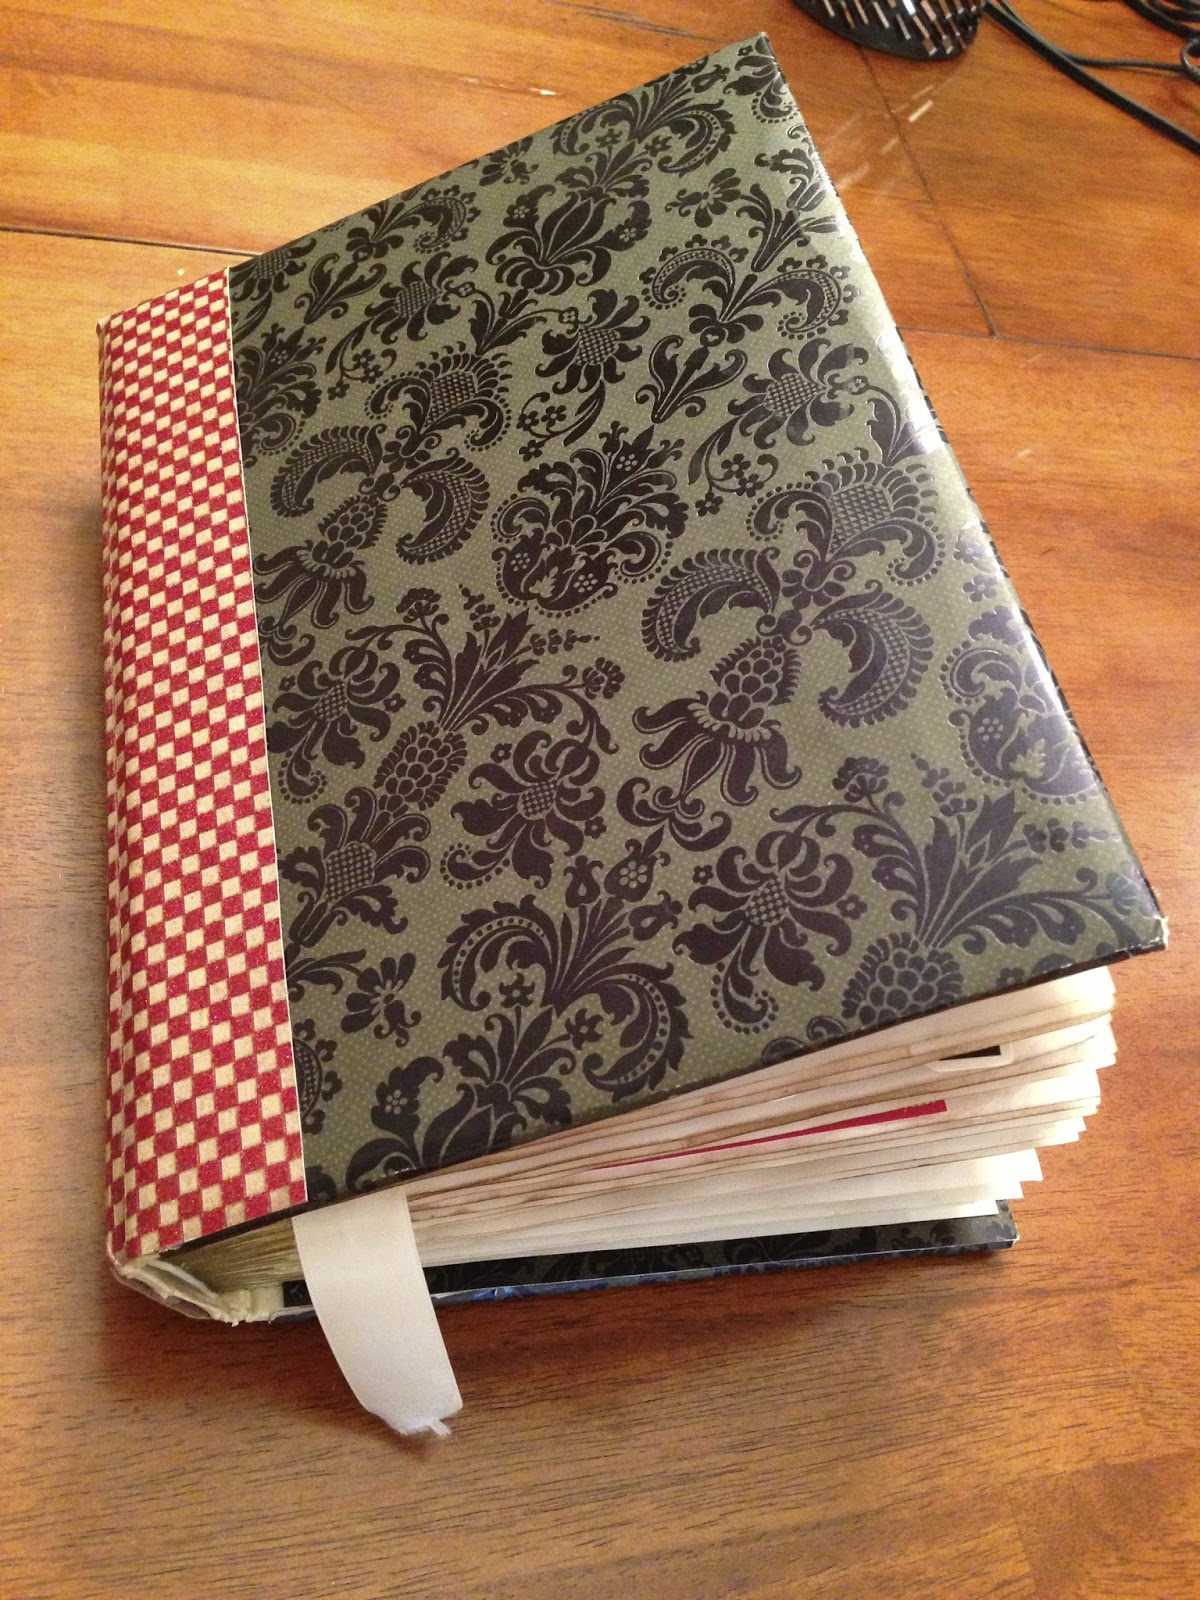 How to make the book for a scrapbook - If You Are Interested In Having Me Make You A Custom Scrapbook Go Here To My Etsy Shop Craftimania And Message Me About A Custom Book